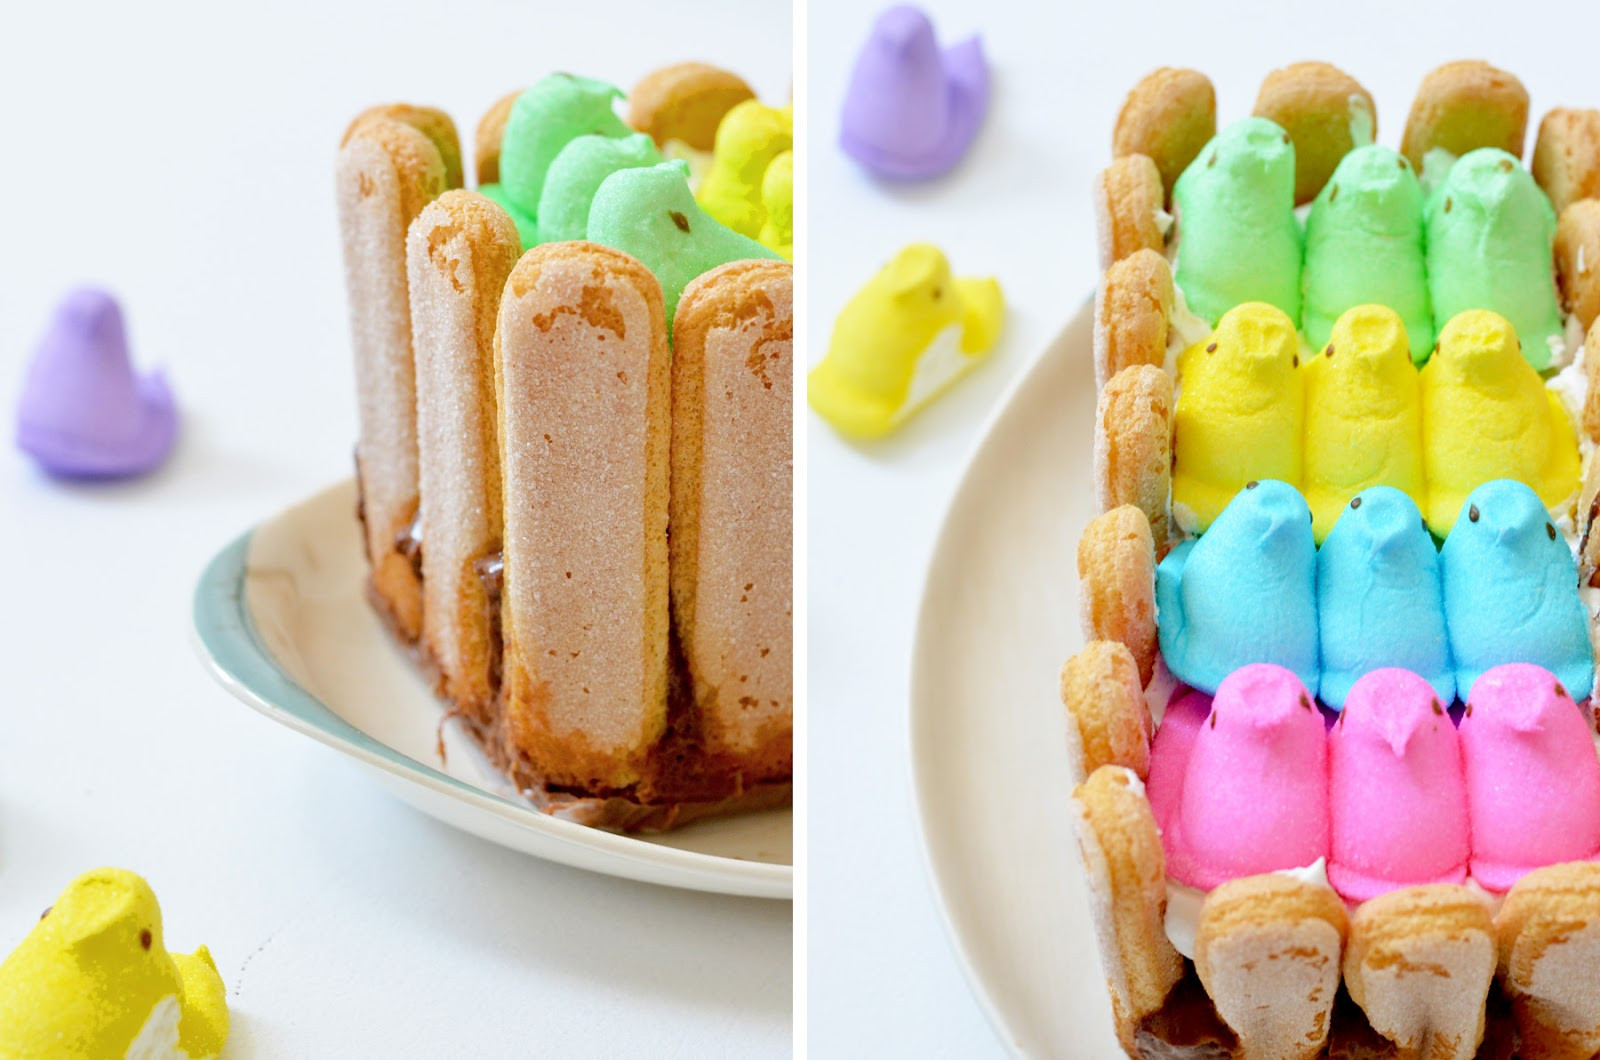 Easy Easter Desserts Recipes With Pictures  Parsimonia Secondhand With Style The Thrifted Kitchen